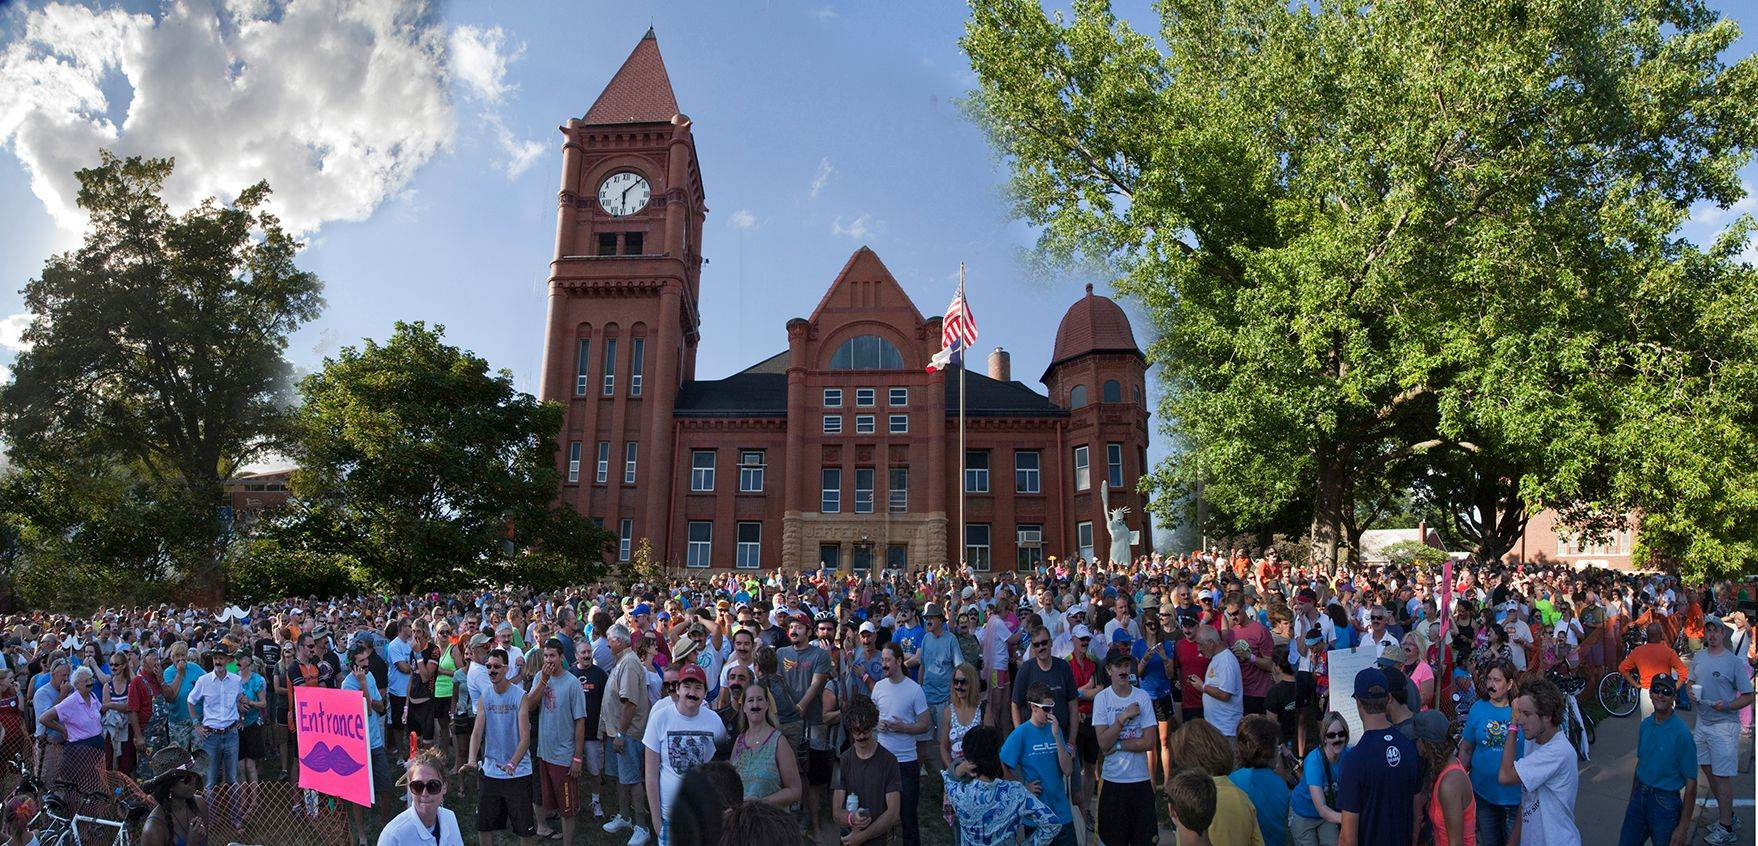 RAGBRAI 2015 at the Courthouse